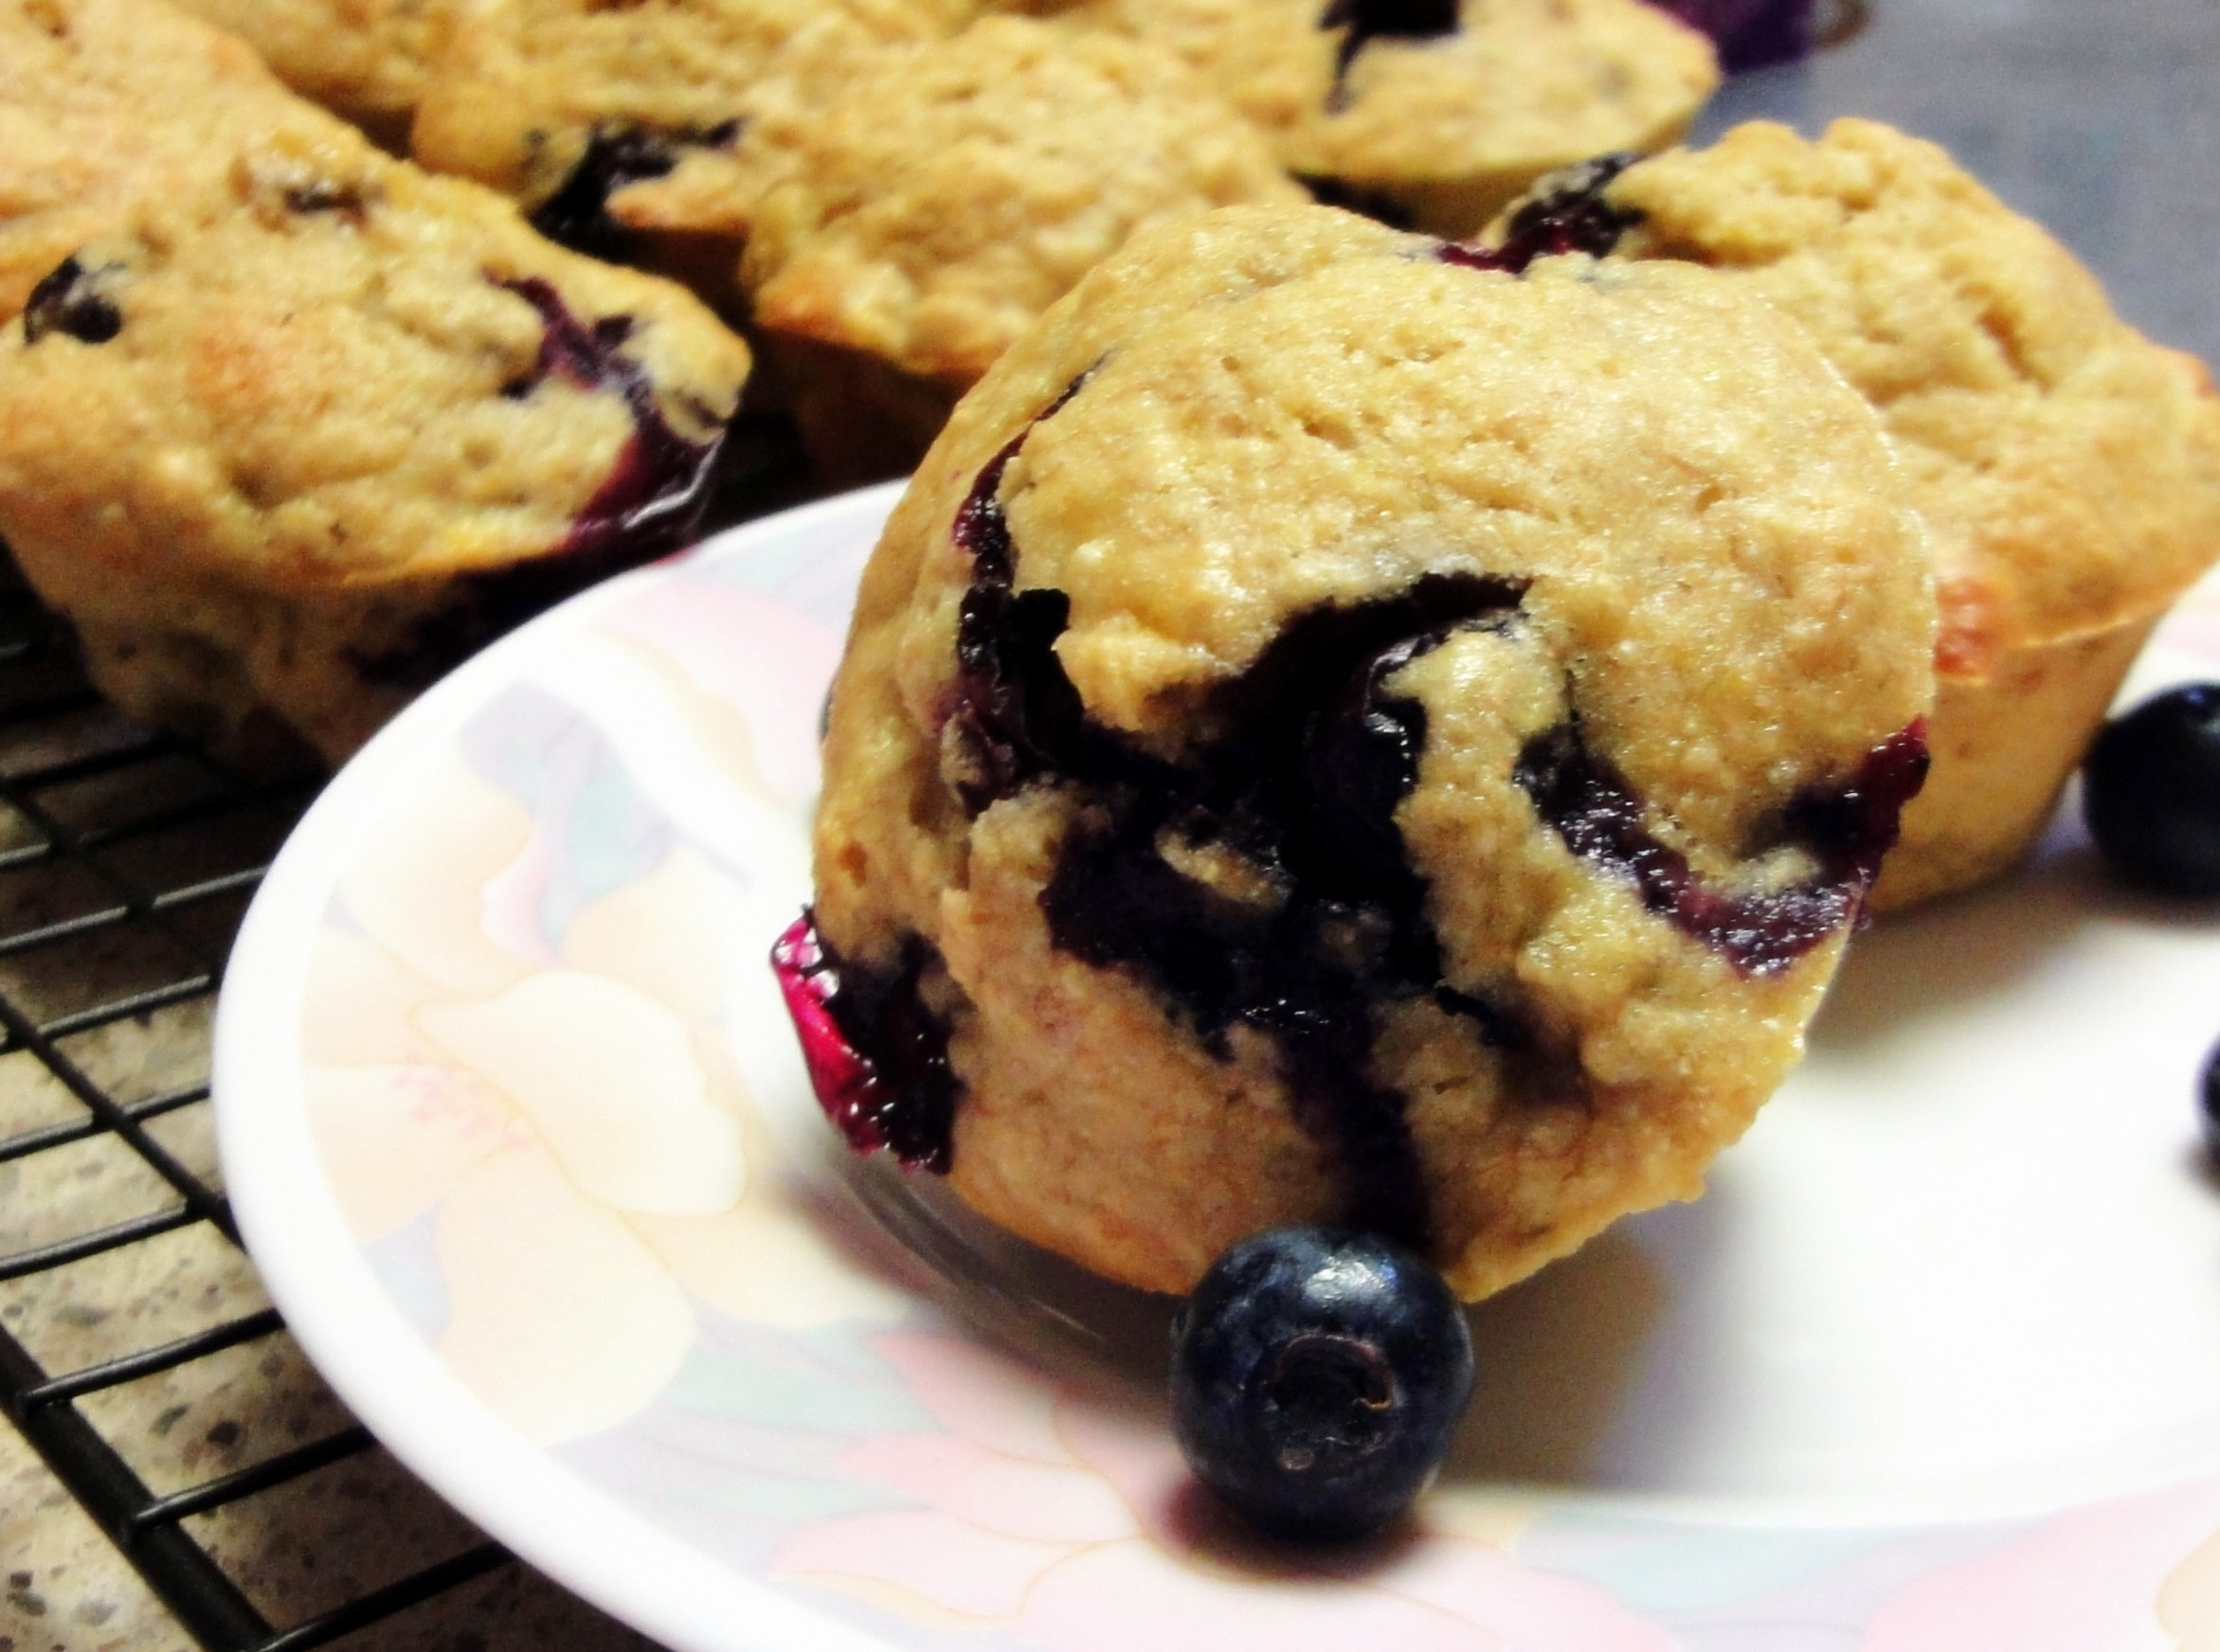 Peanut Butter Day and Banana Blueberry Low Fat Muffins